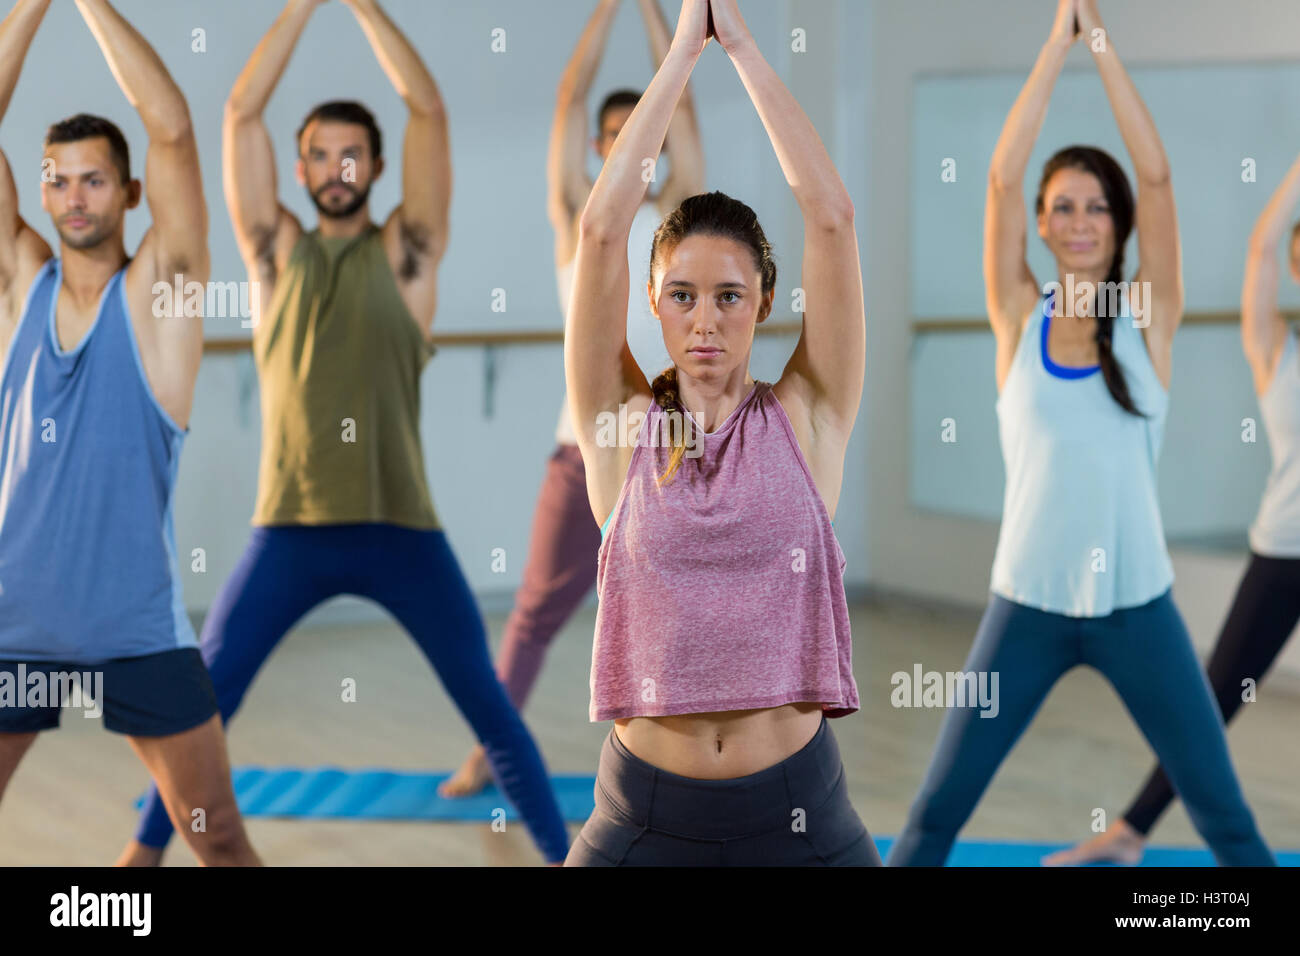 Instructor taking yoga class - Stock Image